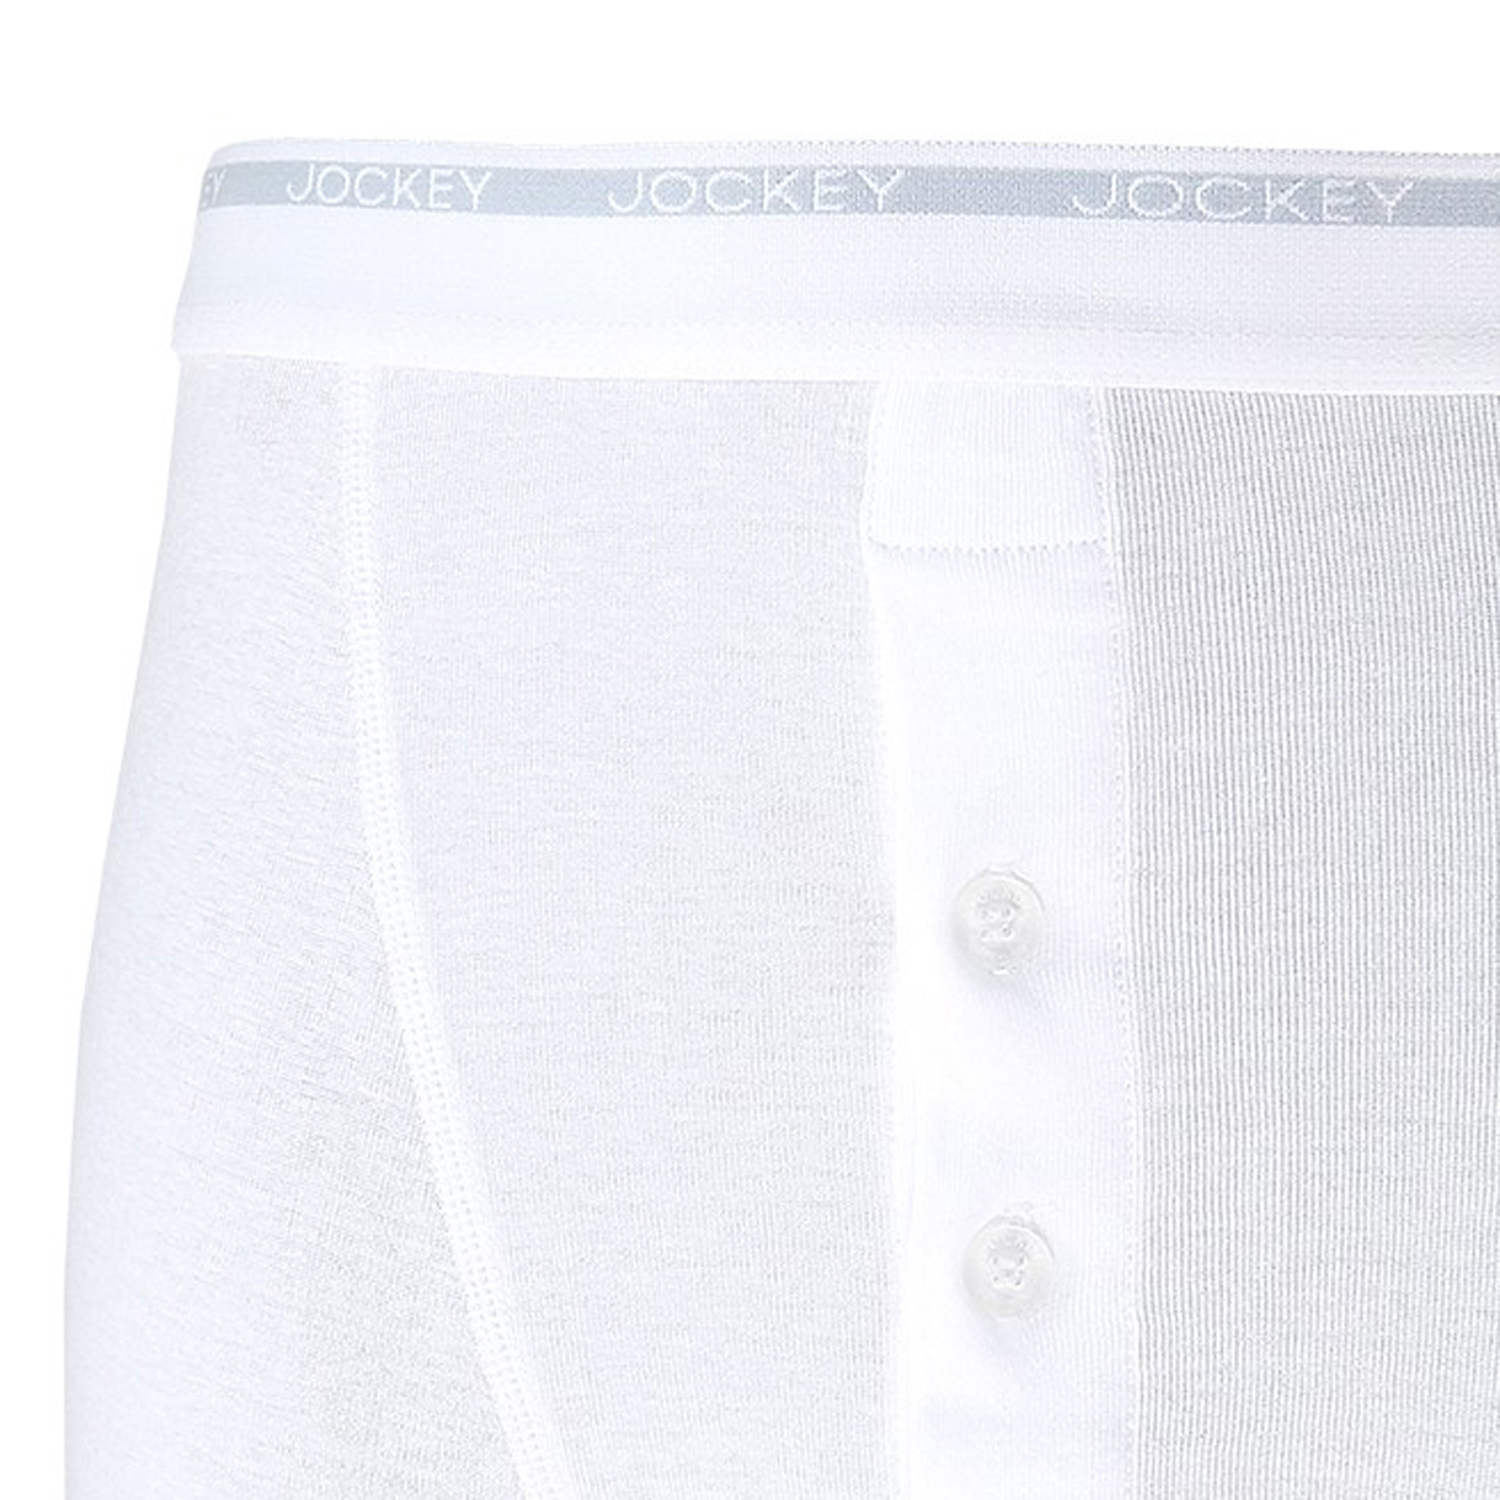 Detail Image to Double pack in white from Jockey in extra large sizes up to 6XL